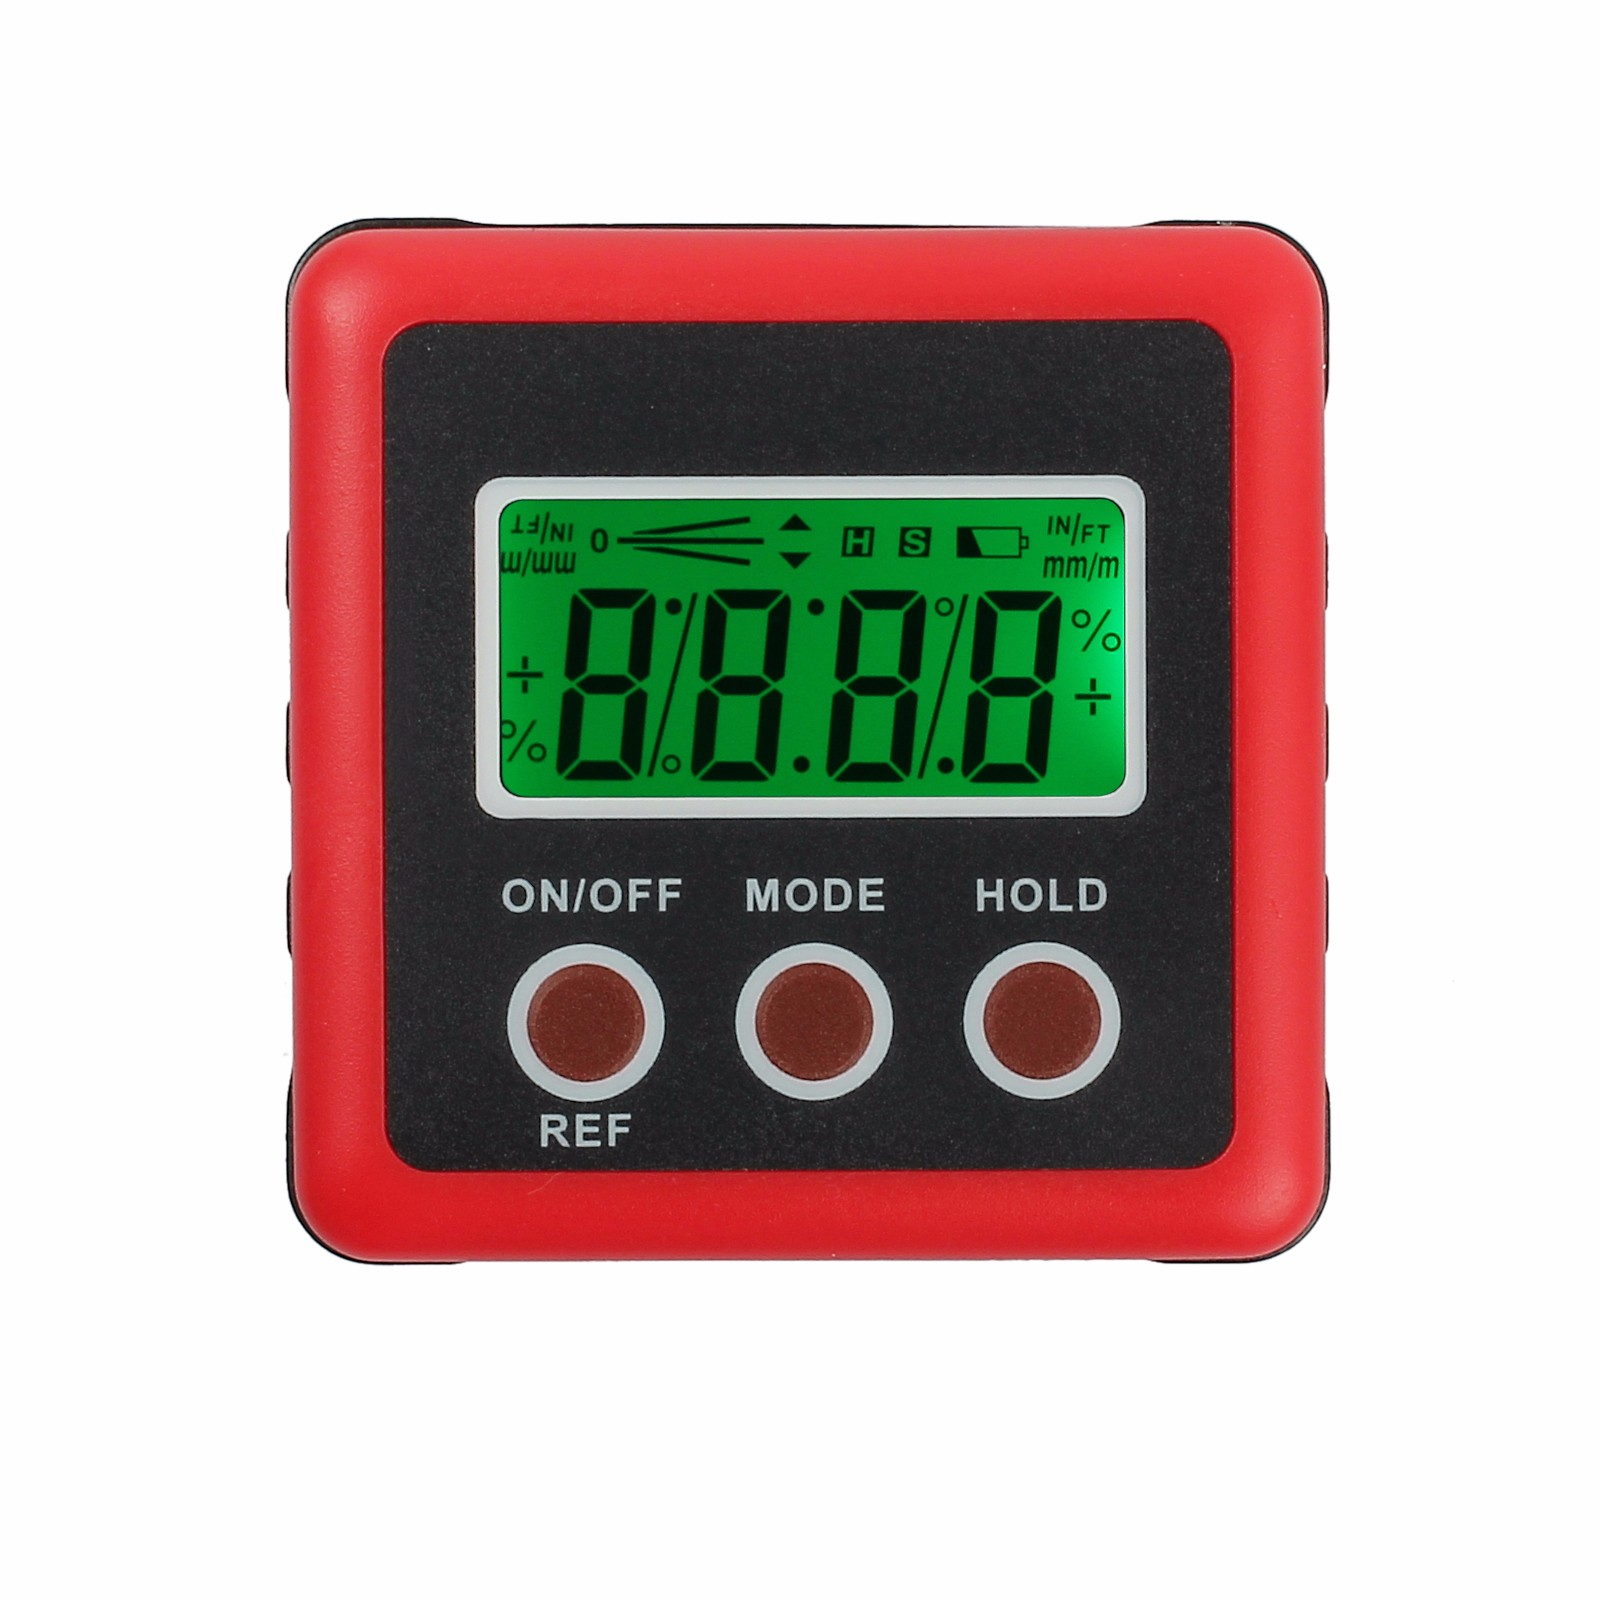 ESYNIC LCD Digital Angle Gauge Protractor Inclinometer Bevel Box ±180° Magnetic Base